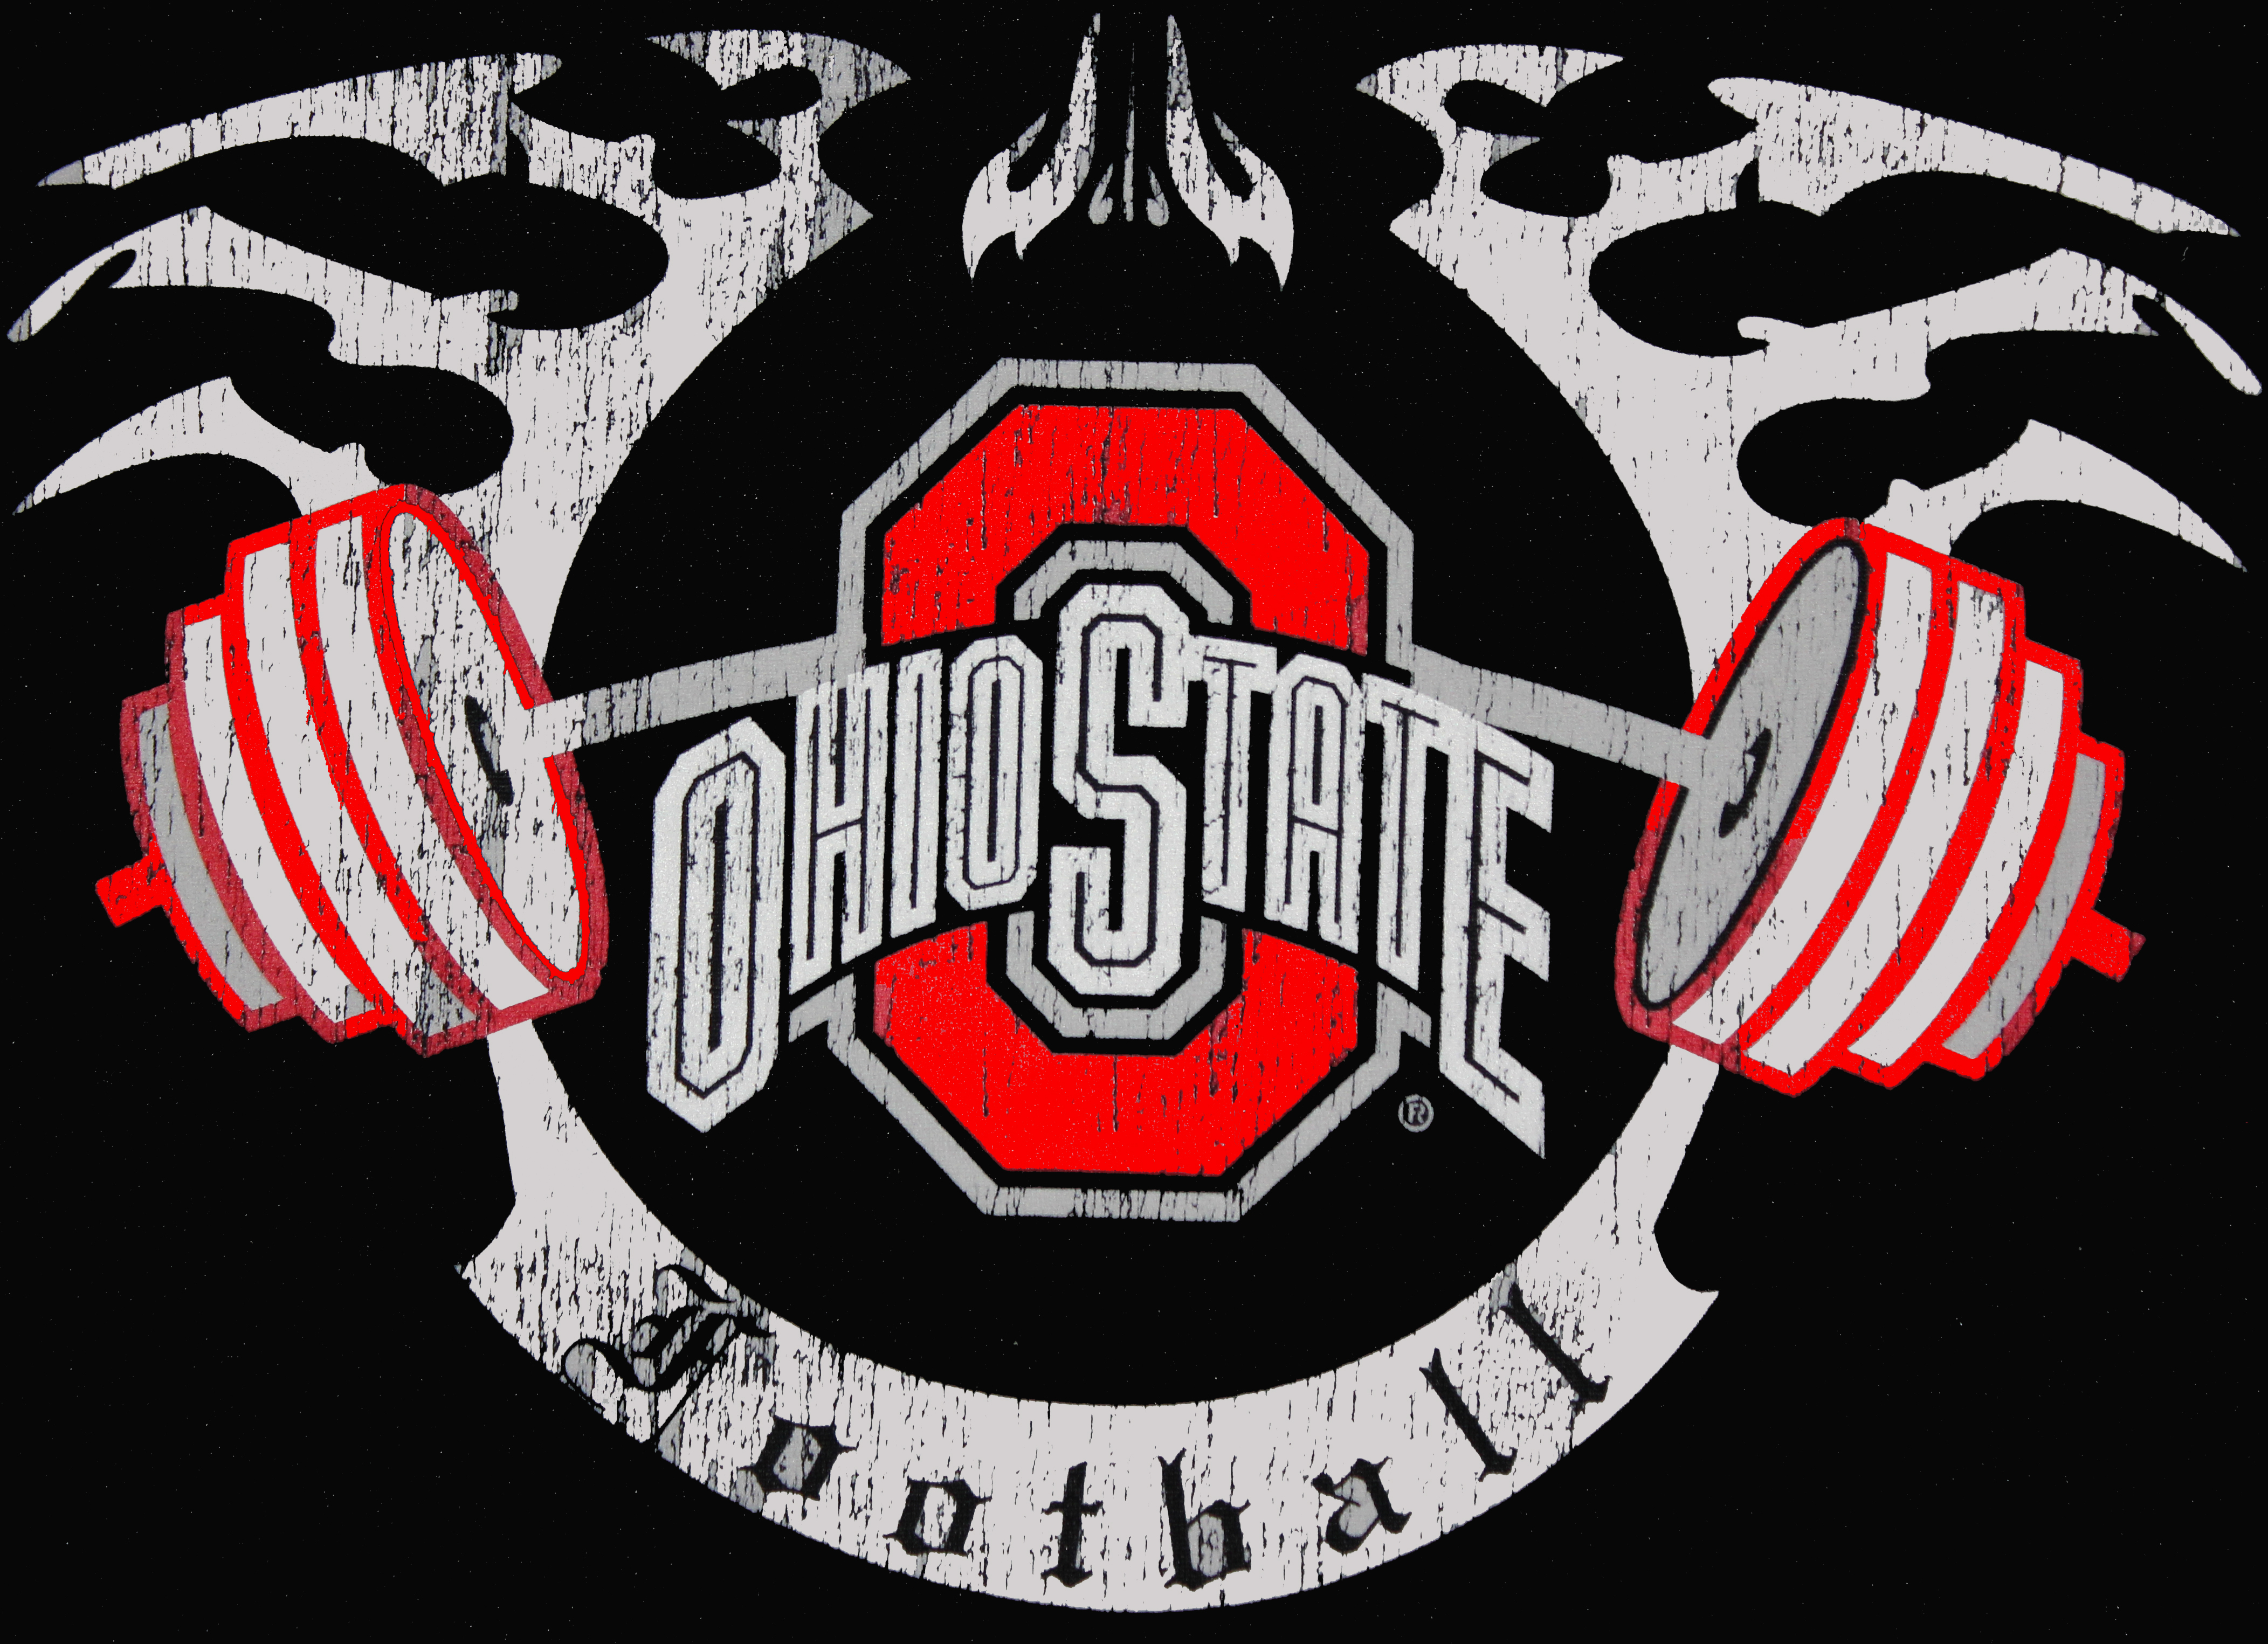 Ohio State Logo Wallpaper: OHIO STATE BUCKEYES College Football (4) Wallpaper